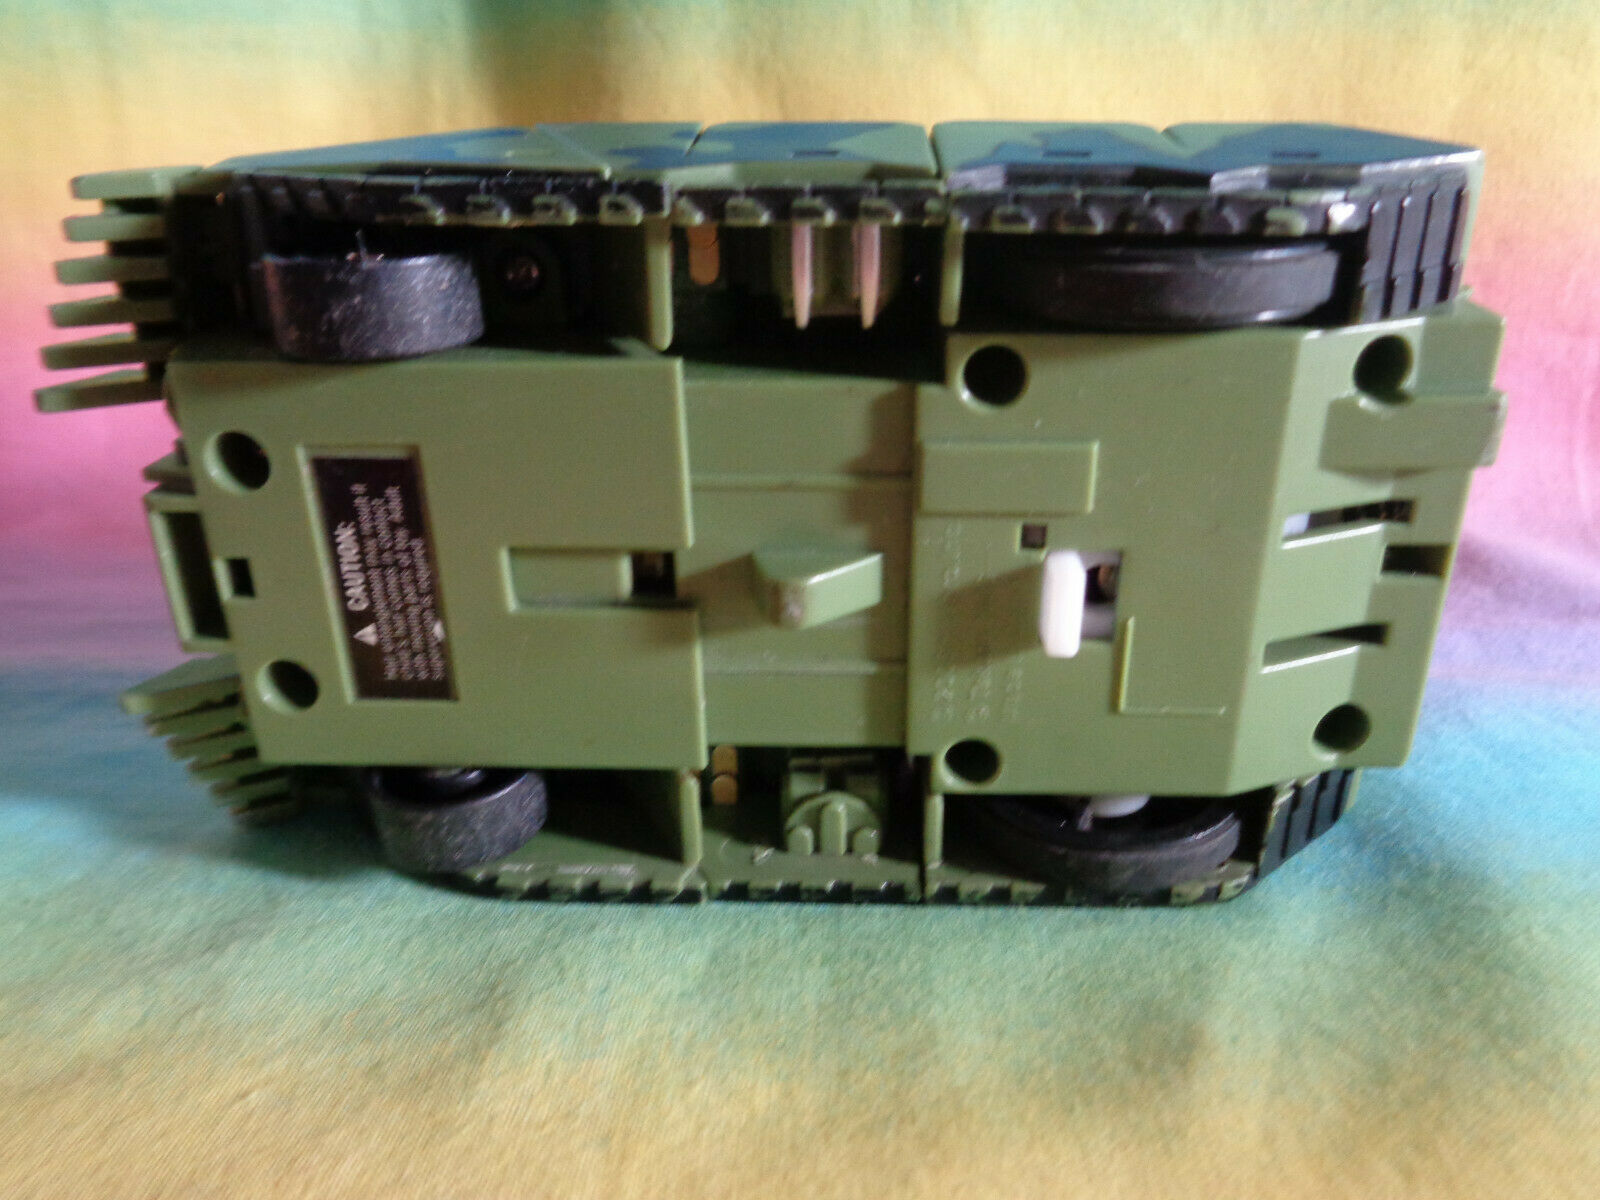 Transformers 2008 Hasbro Green Army Tank Replacement Parts - as is image 5